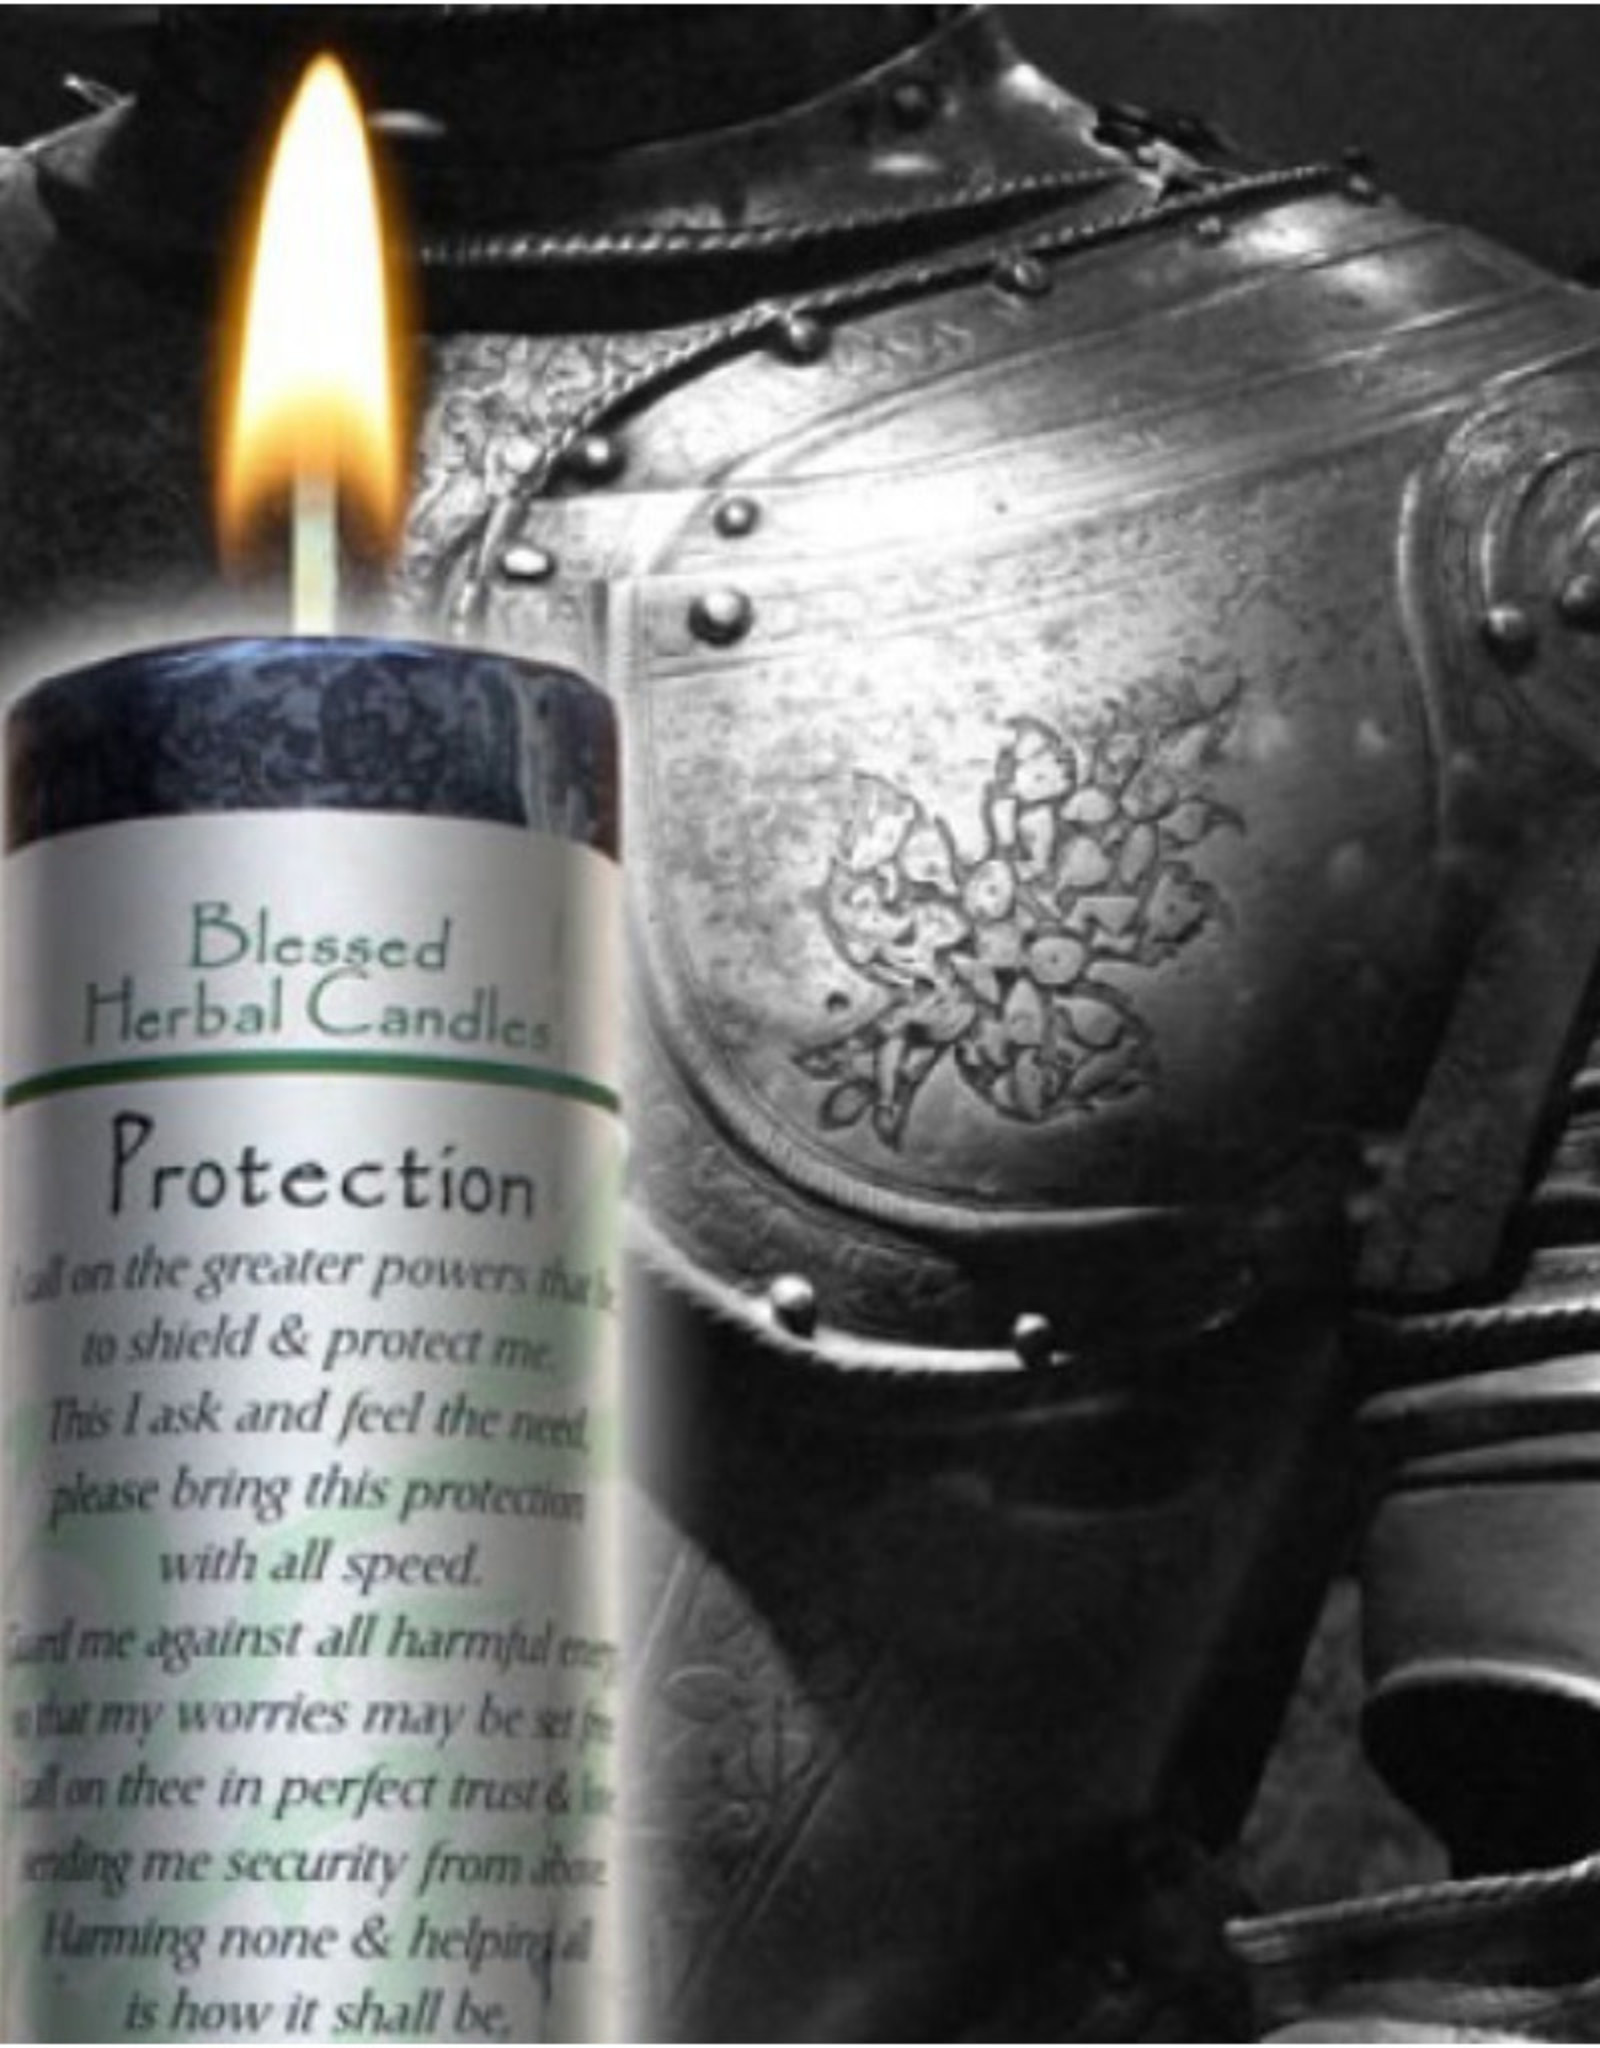 Coventry Creations Blessed Herbal Candle - Protection